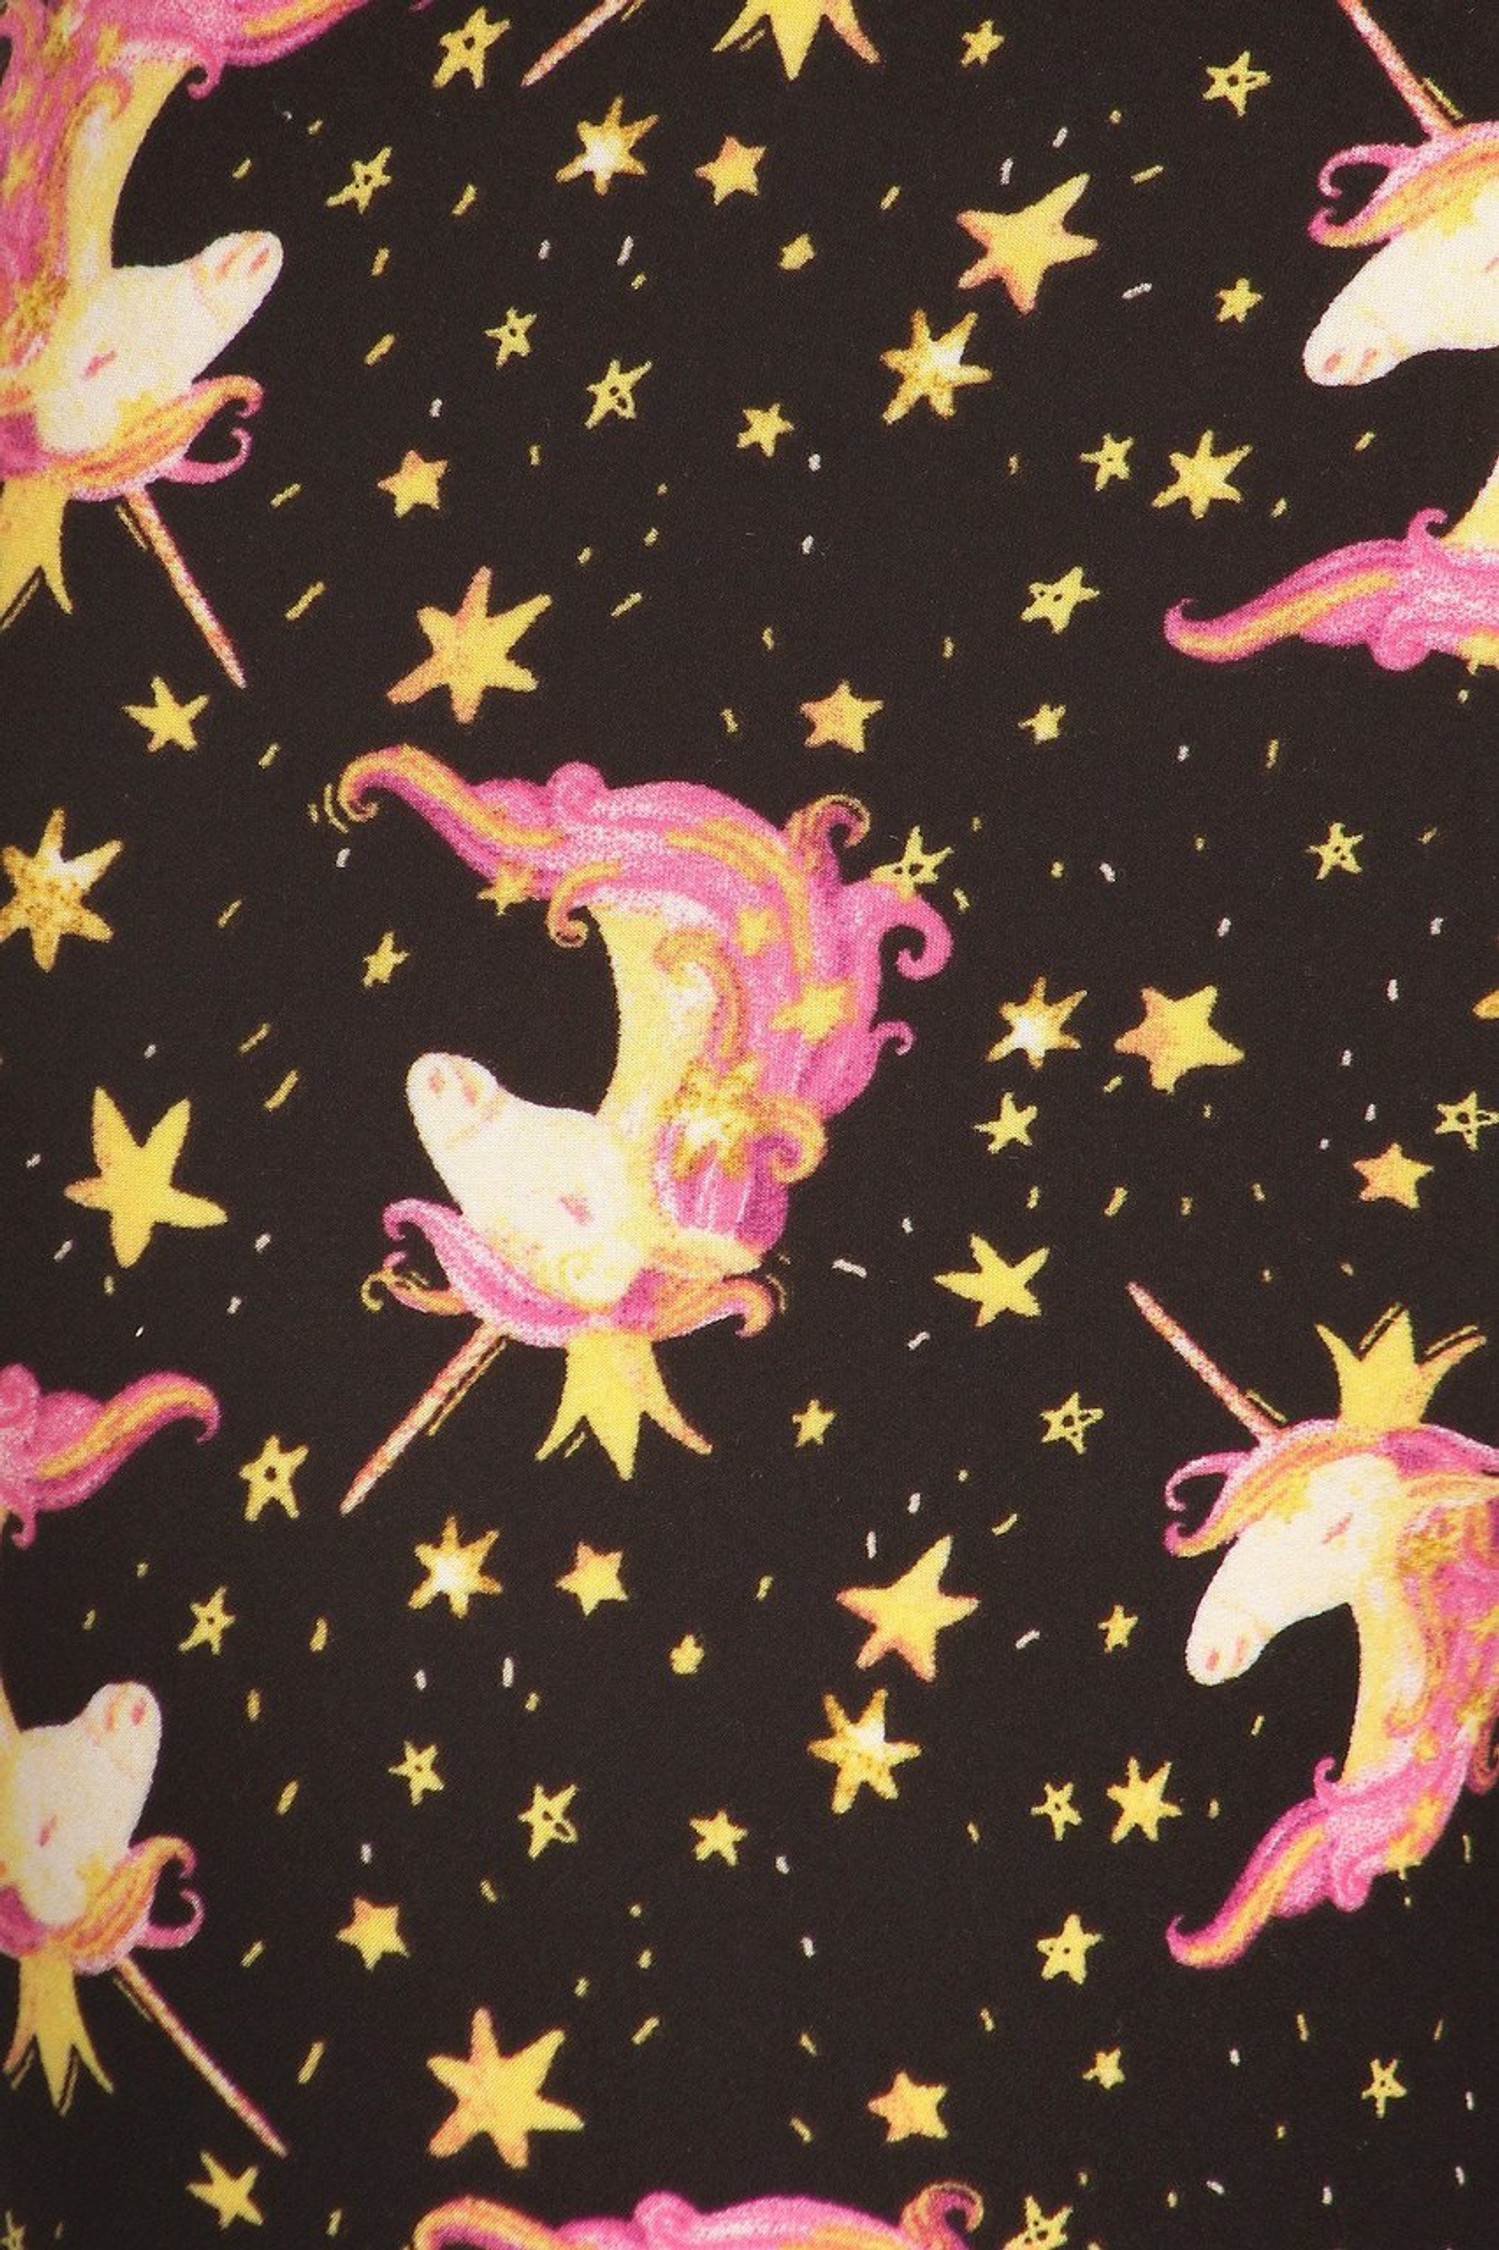 Twinkle Unicorn Plus Size Leggings - 3X-5X - LIMITED EDITION